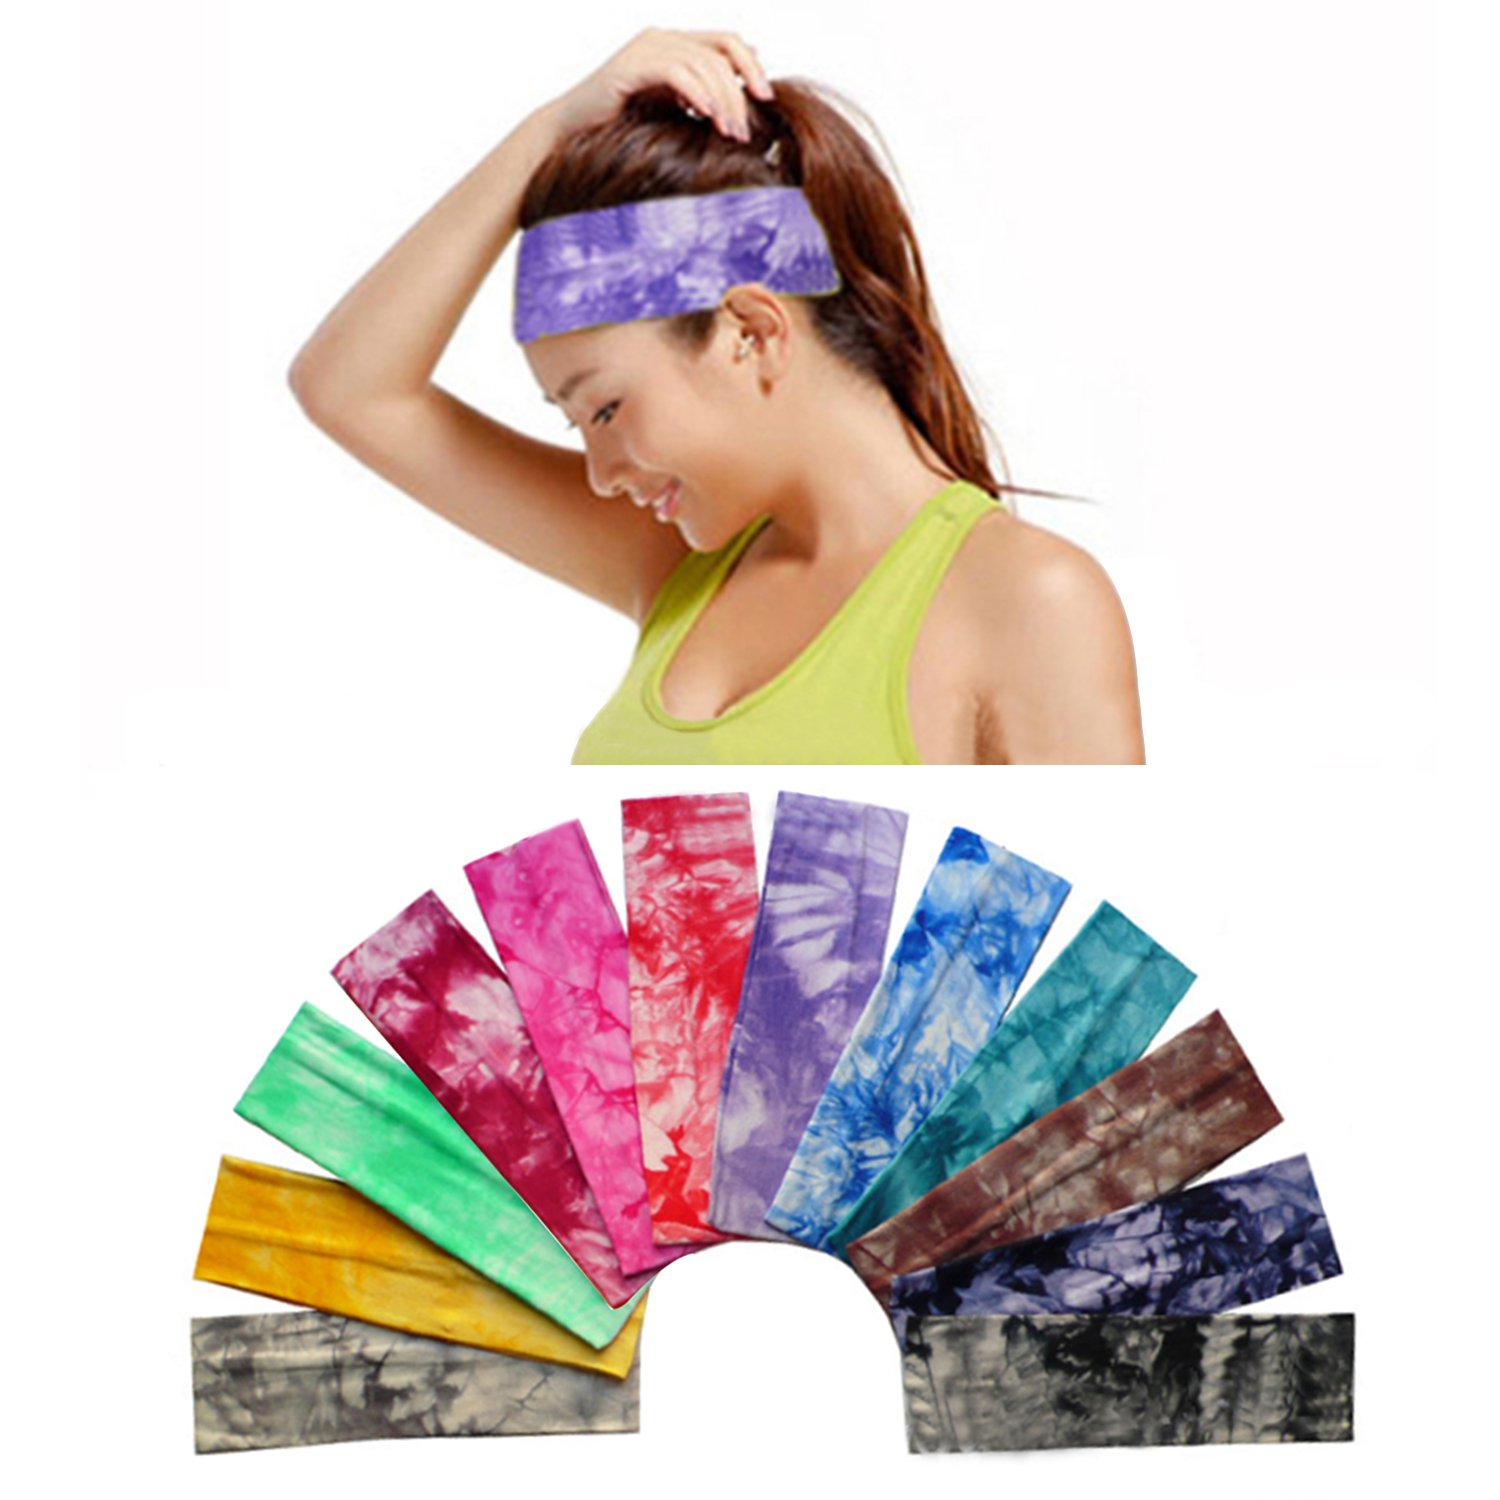 Amazon.com   12 Pack Cotton Headbands by Teemico - Tie Dye Headbands Cotton  Stretch Headbands Elastic Yoga Hairband for Teens Girls Women Exercise  Running ... cc91a75d817